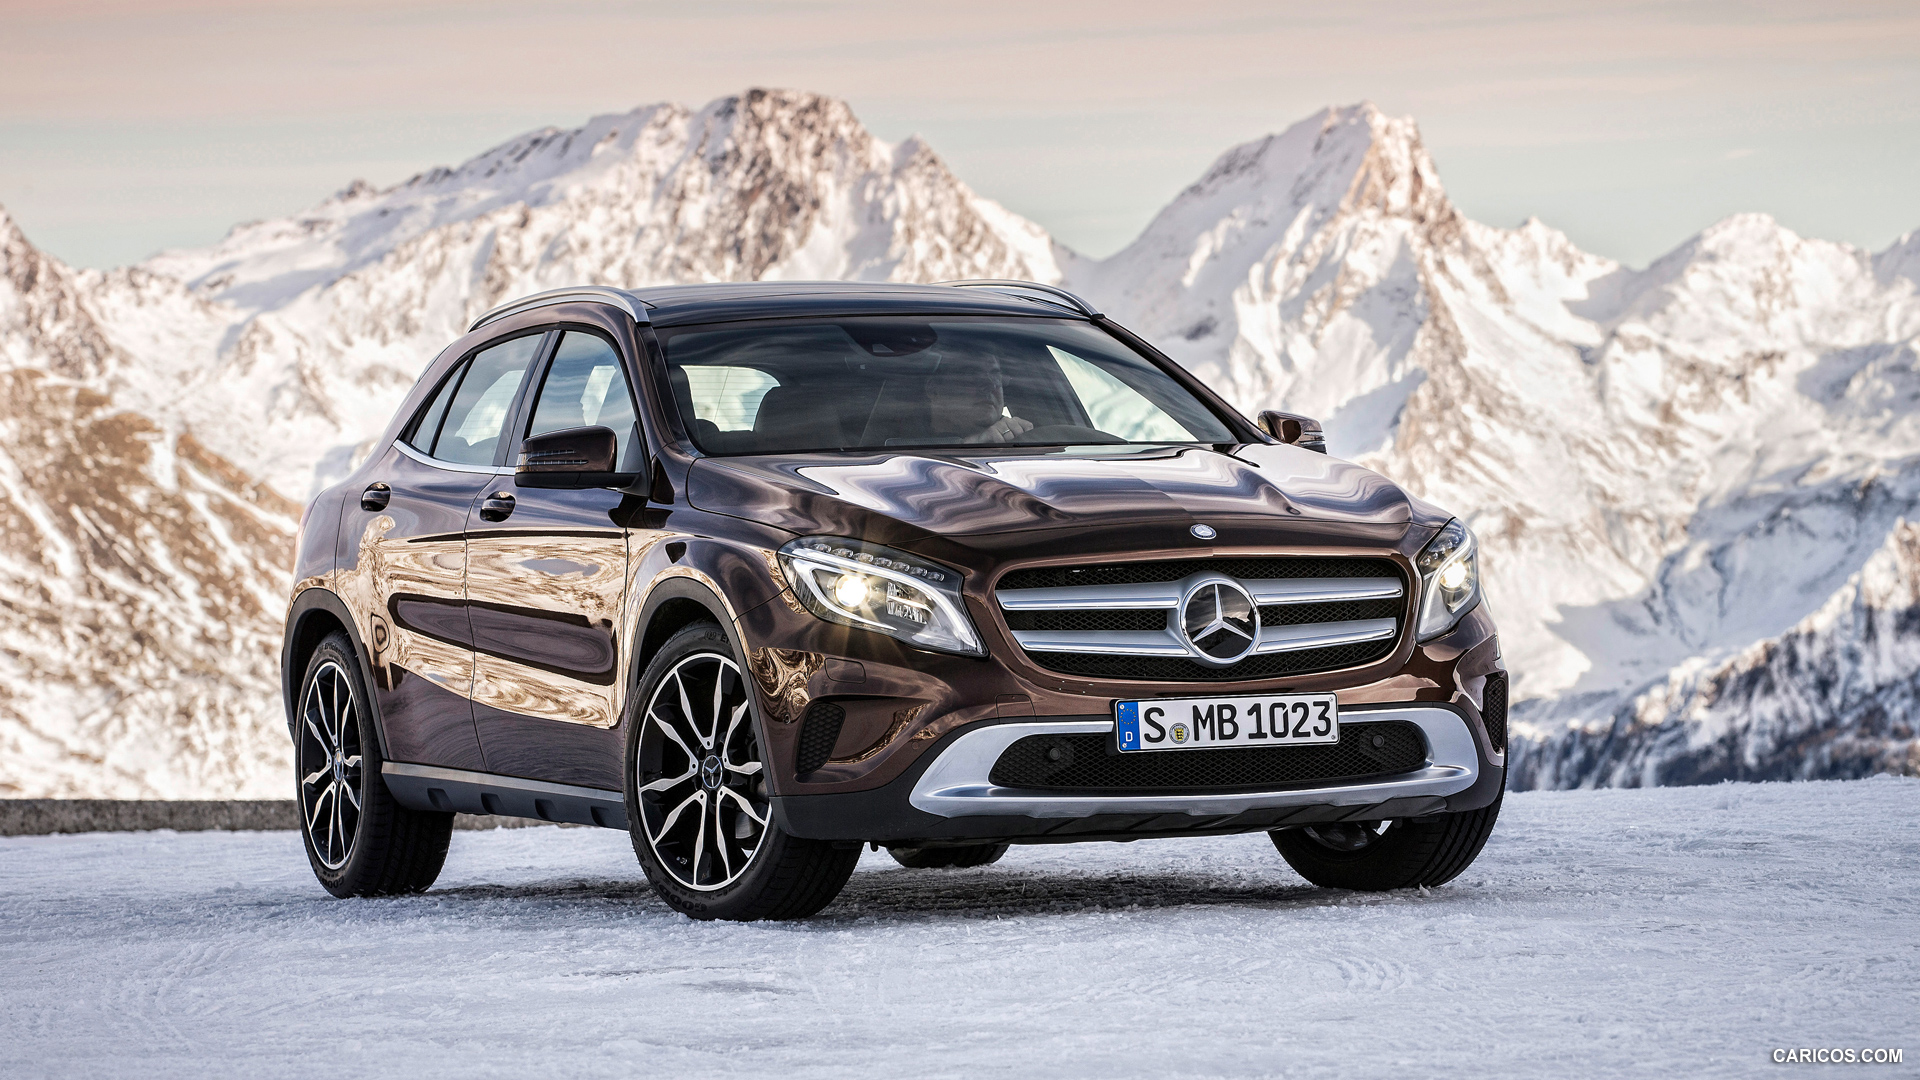 2015 mercedes benz gl class image 3 for 2015 mercedes benz gl